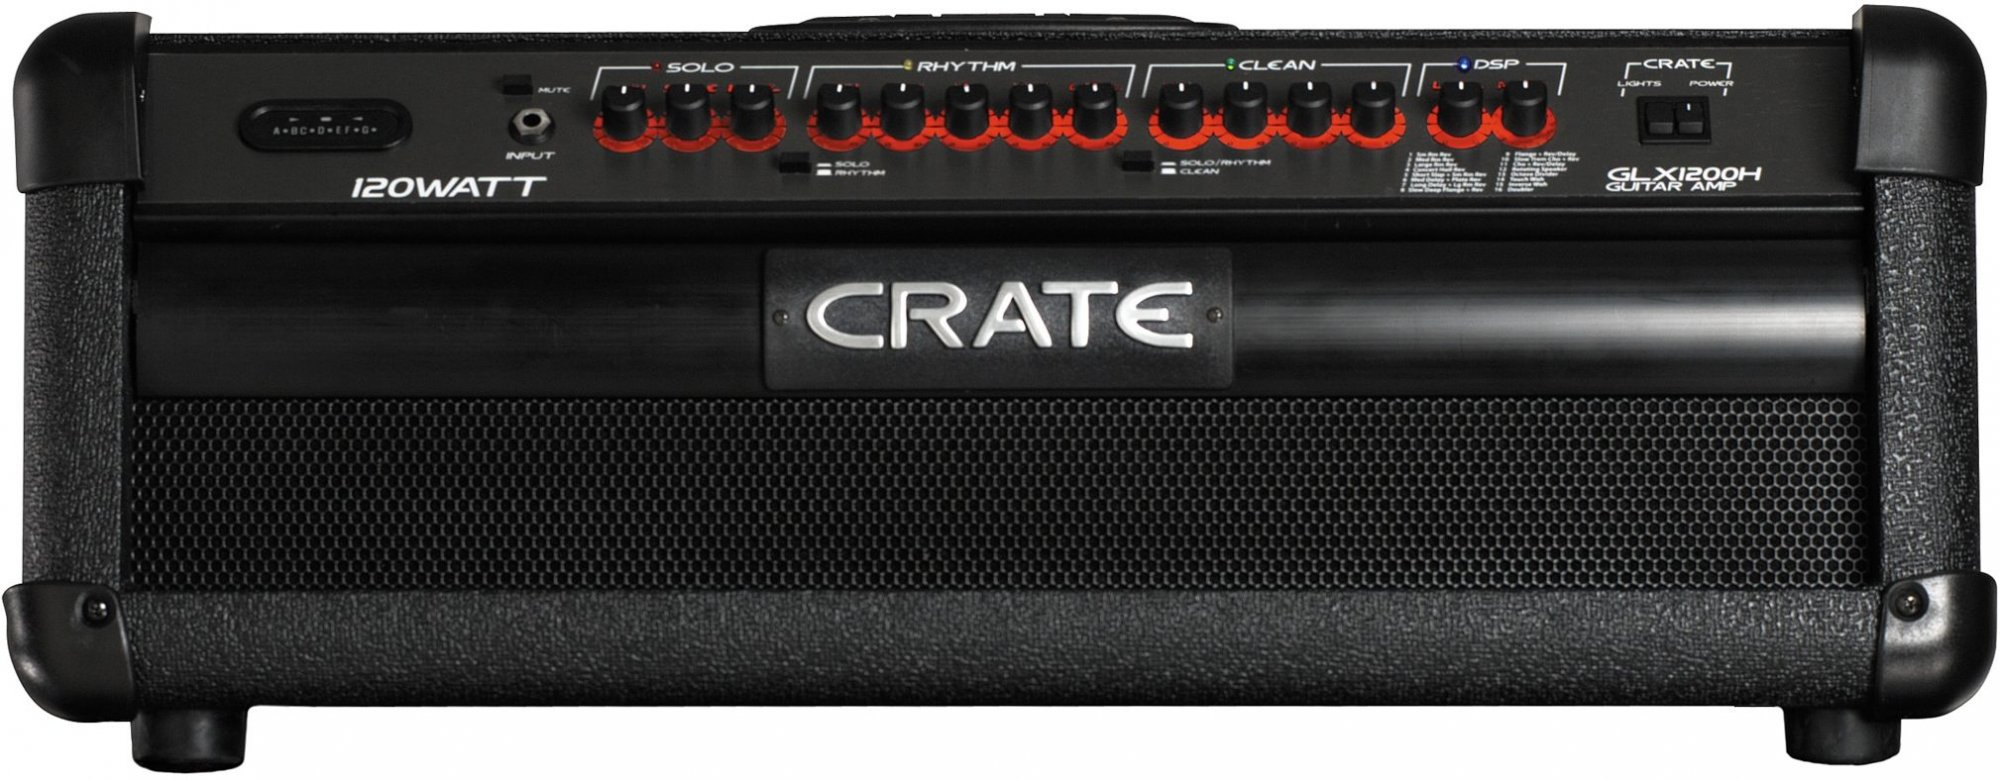 Used Crate Guitar Amp Head GLX1200H UGLX1200H